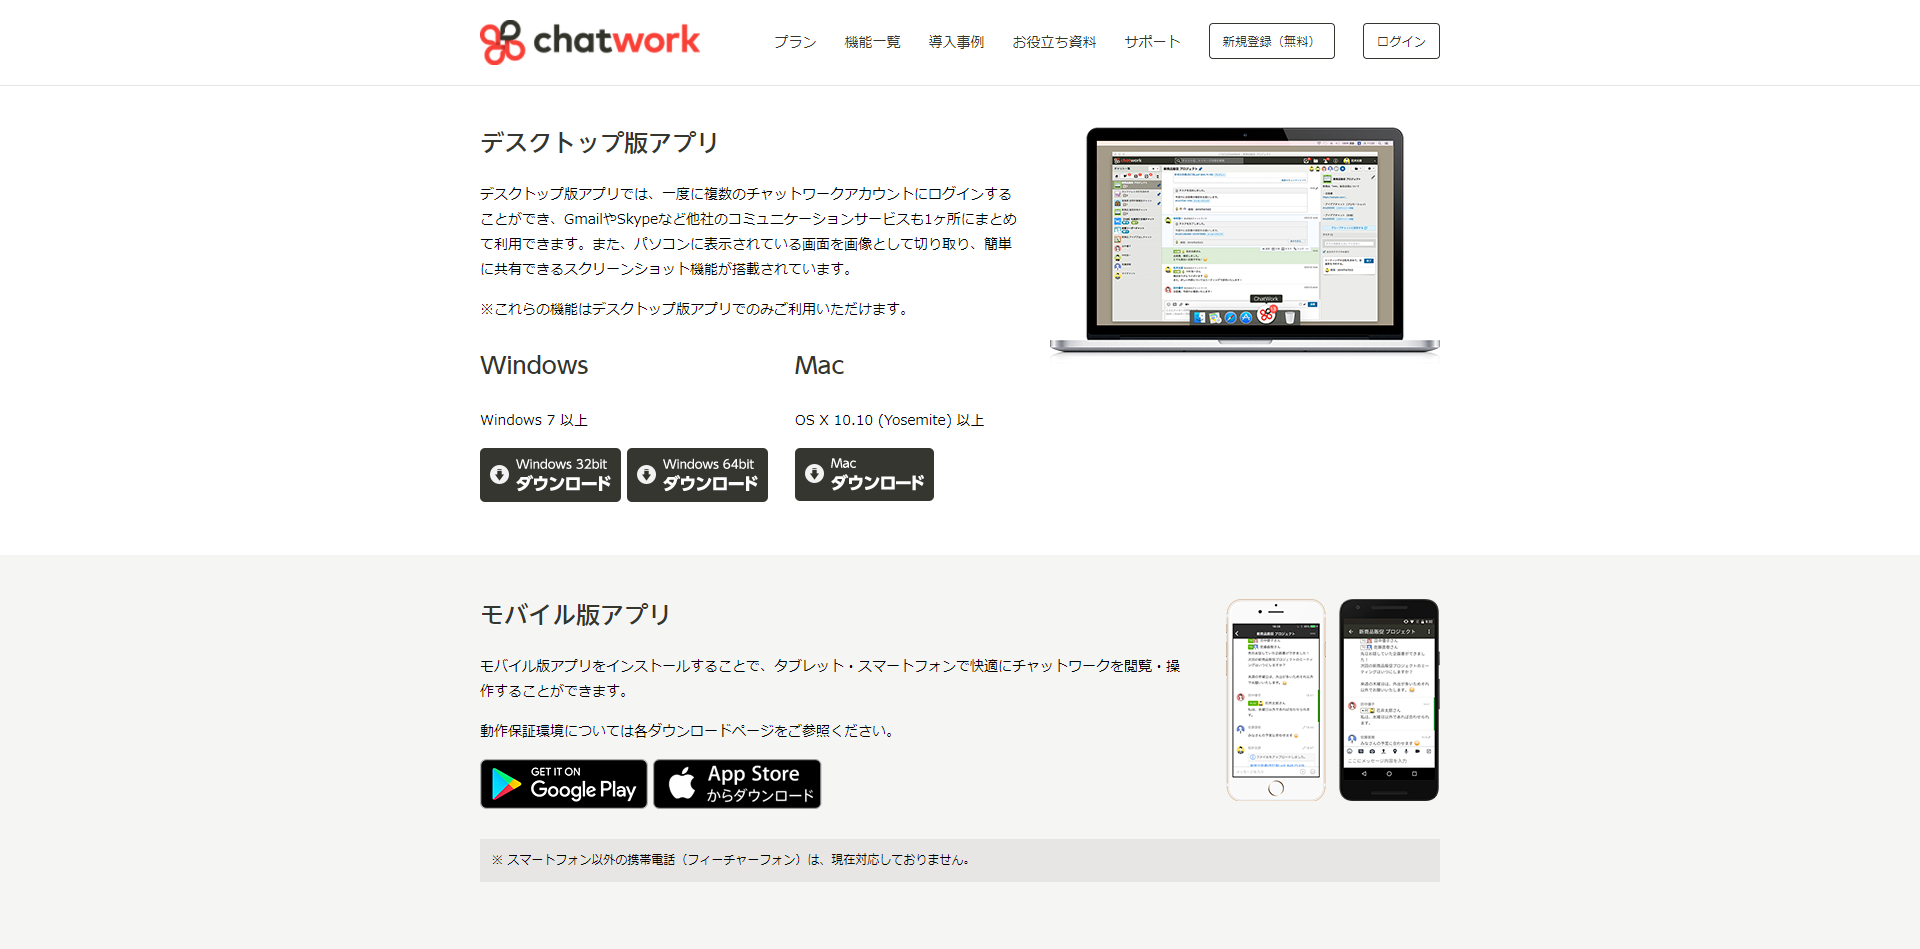 FireShot Capture 3 - ダウンロード I チャットワーク(ChatWork) - https___go.chatwork.com_ja_download_.png